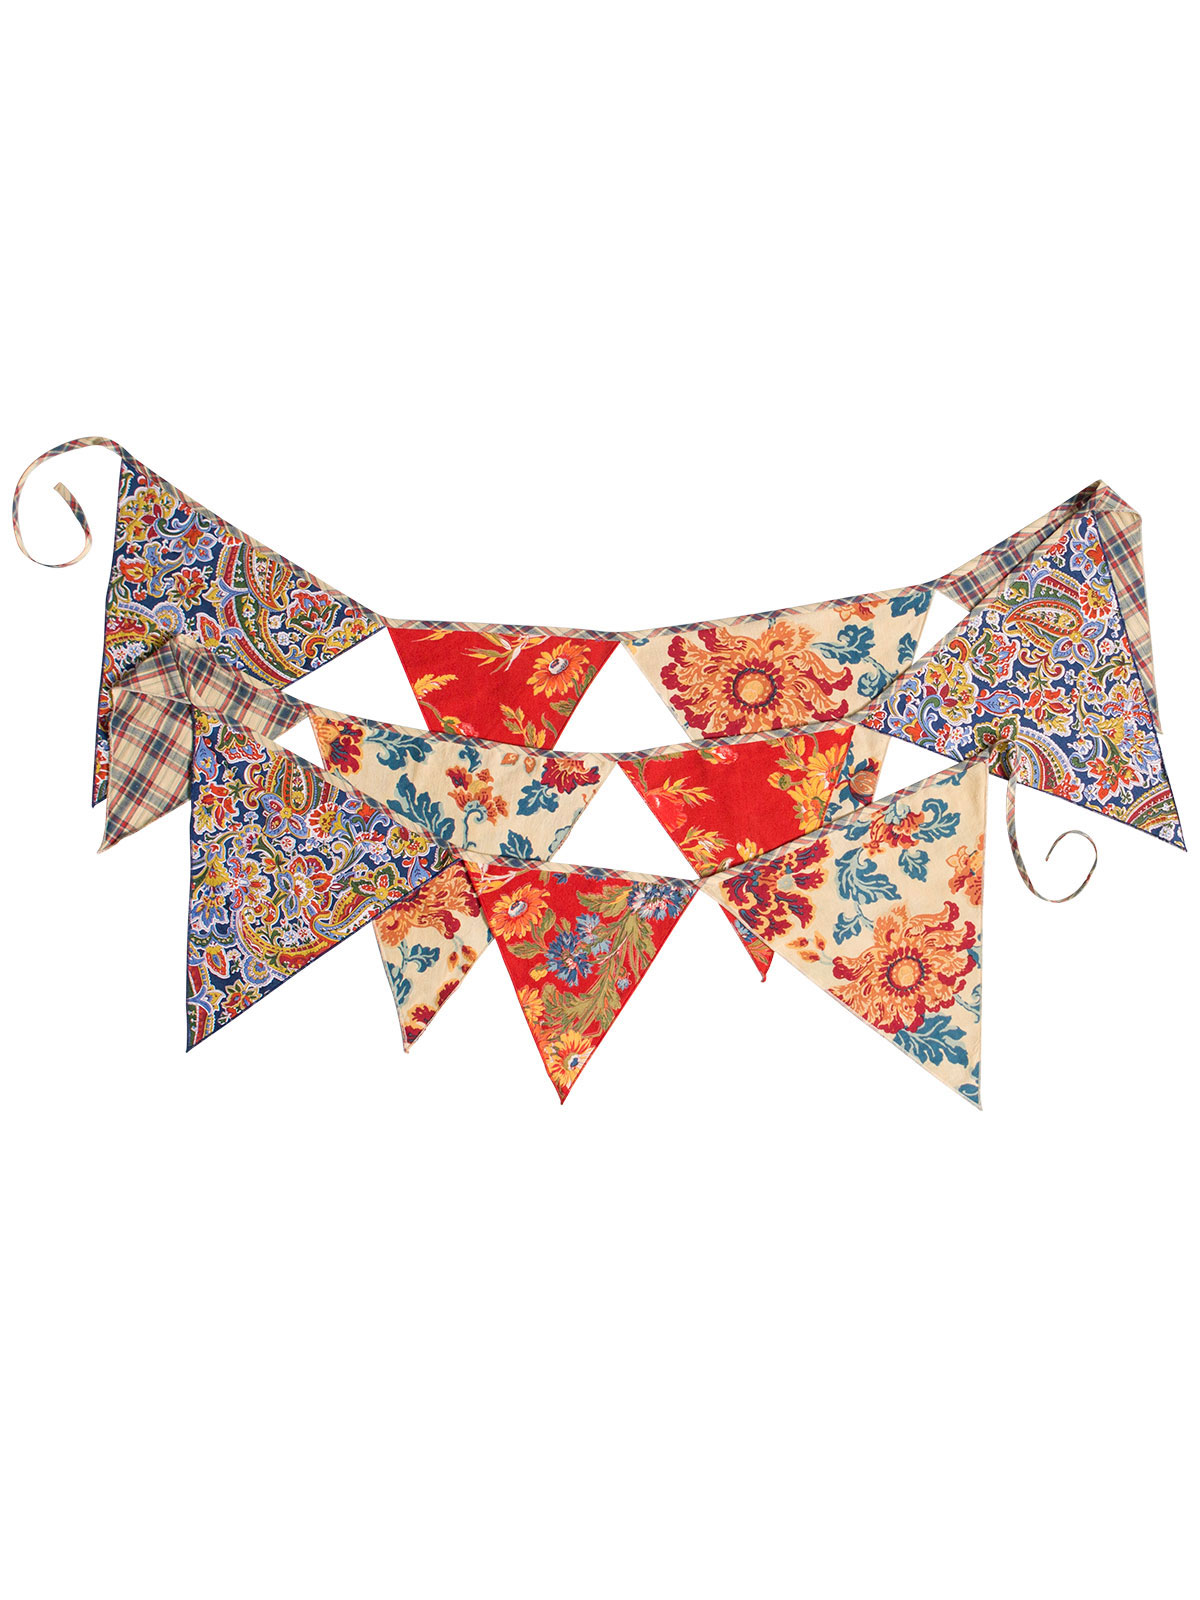 Kindred Patchwork Party Pennants